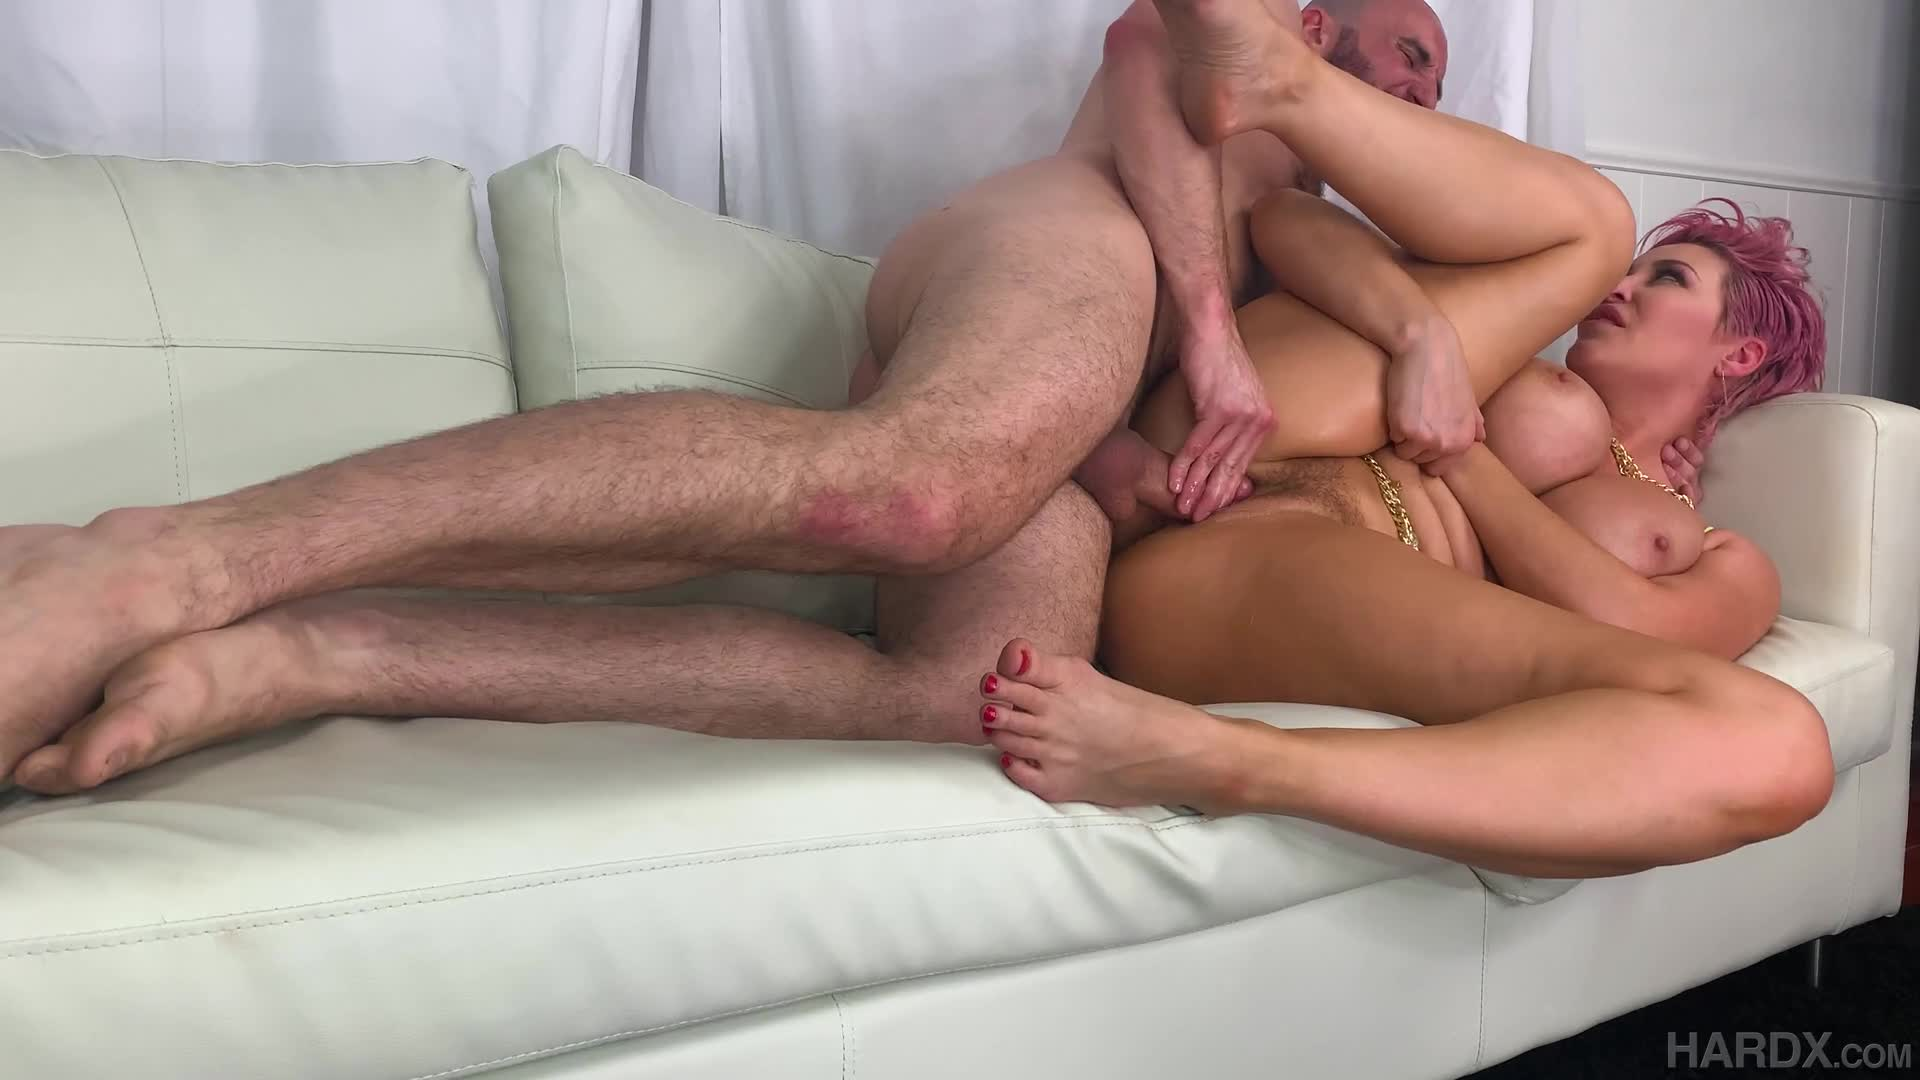 Keely porn ryan Search Results